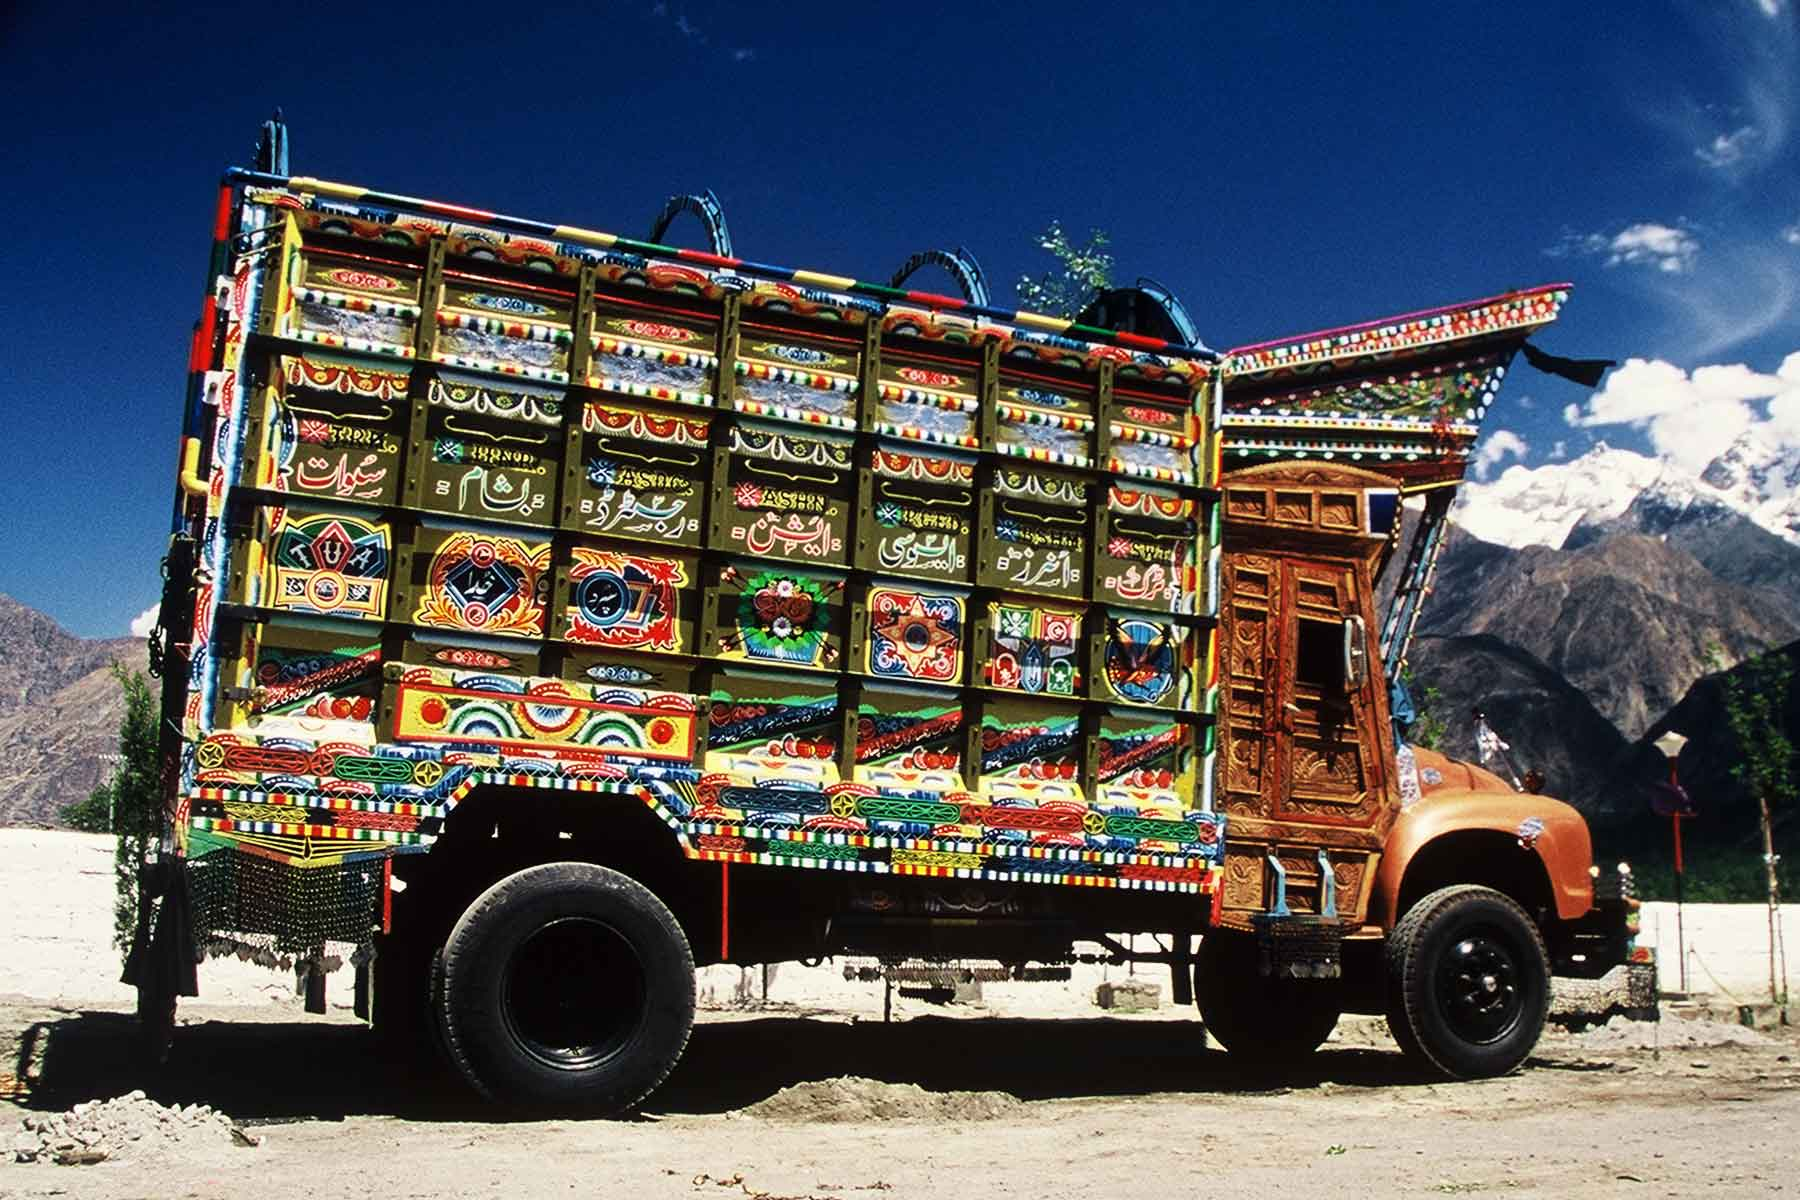 Colorful Bedford Pakistani Truck - Pakistan Photo Journal - Steven Andrew Martin - Karakoram Highway - Silk Road